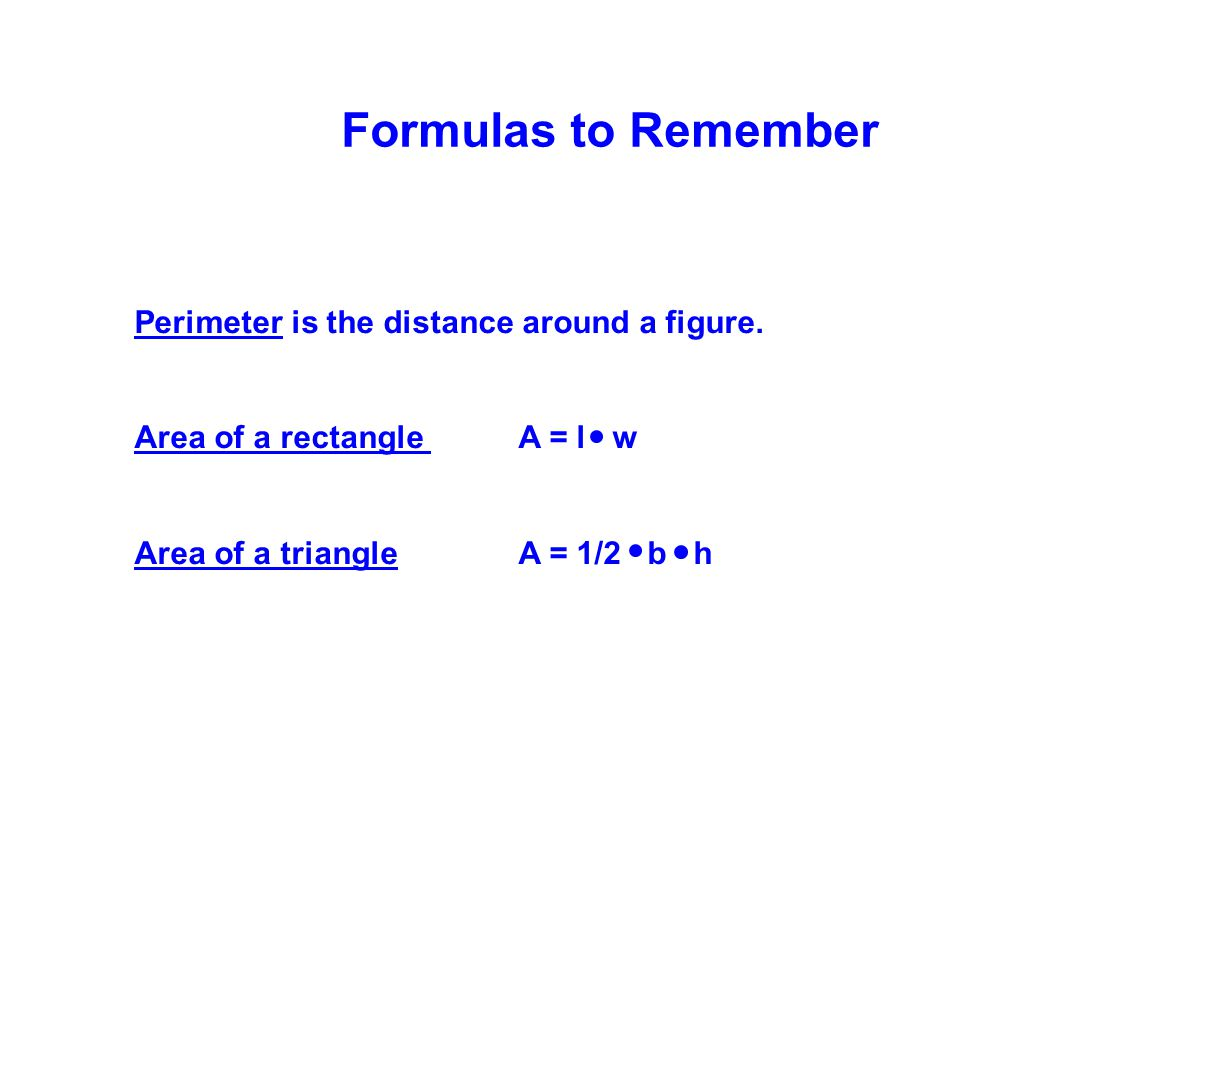 Formulas to Remember Perimeter is the distance around a figure. Area of a rectangle A = l w Area of a triangle A = 1/2 b h